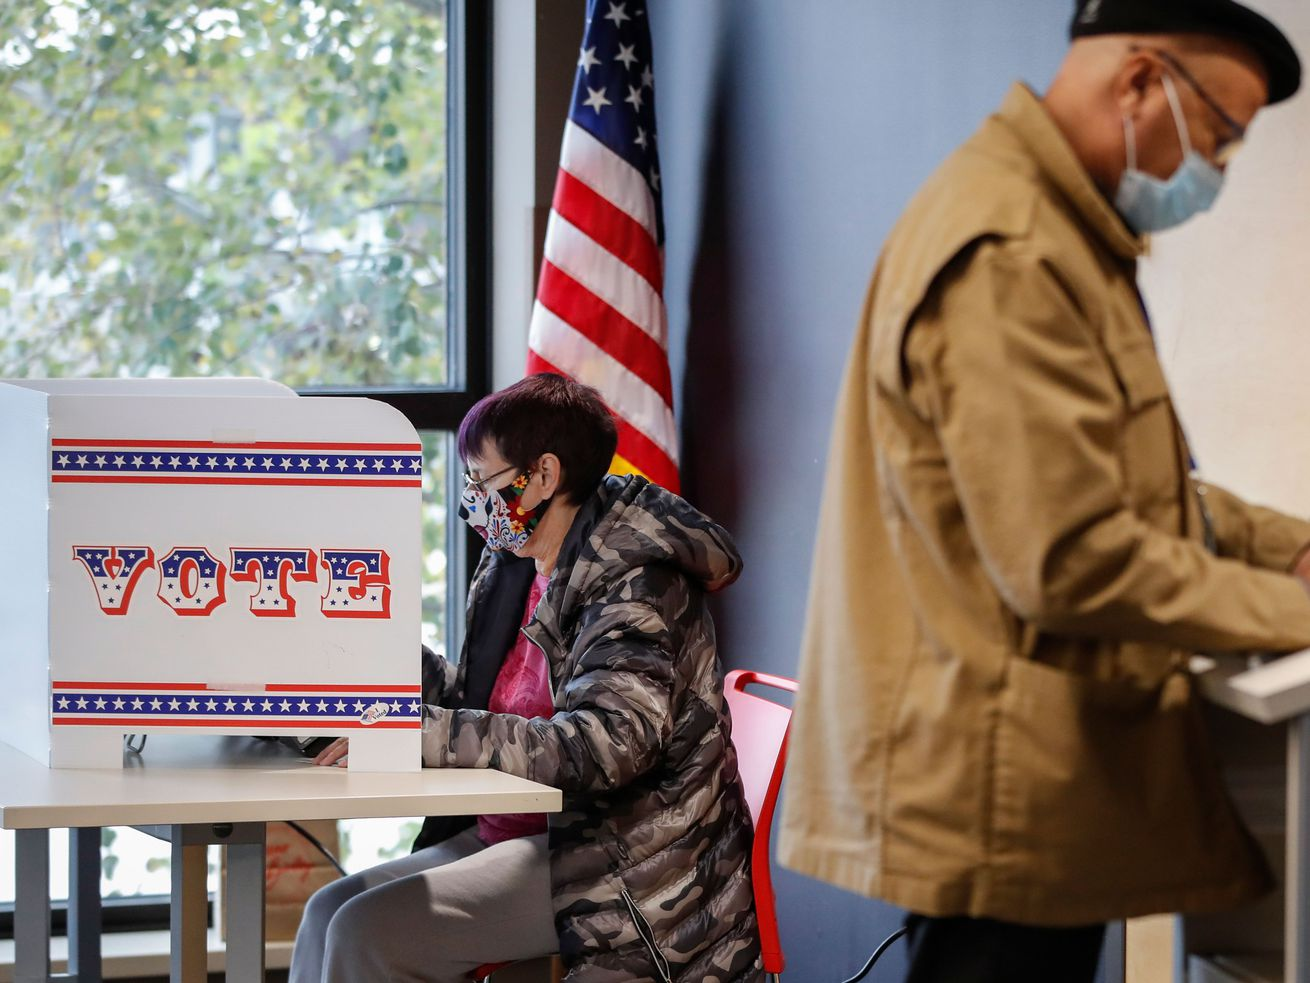 People voting at an indoor polling location.